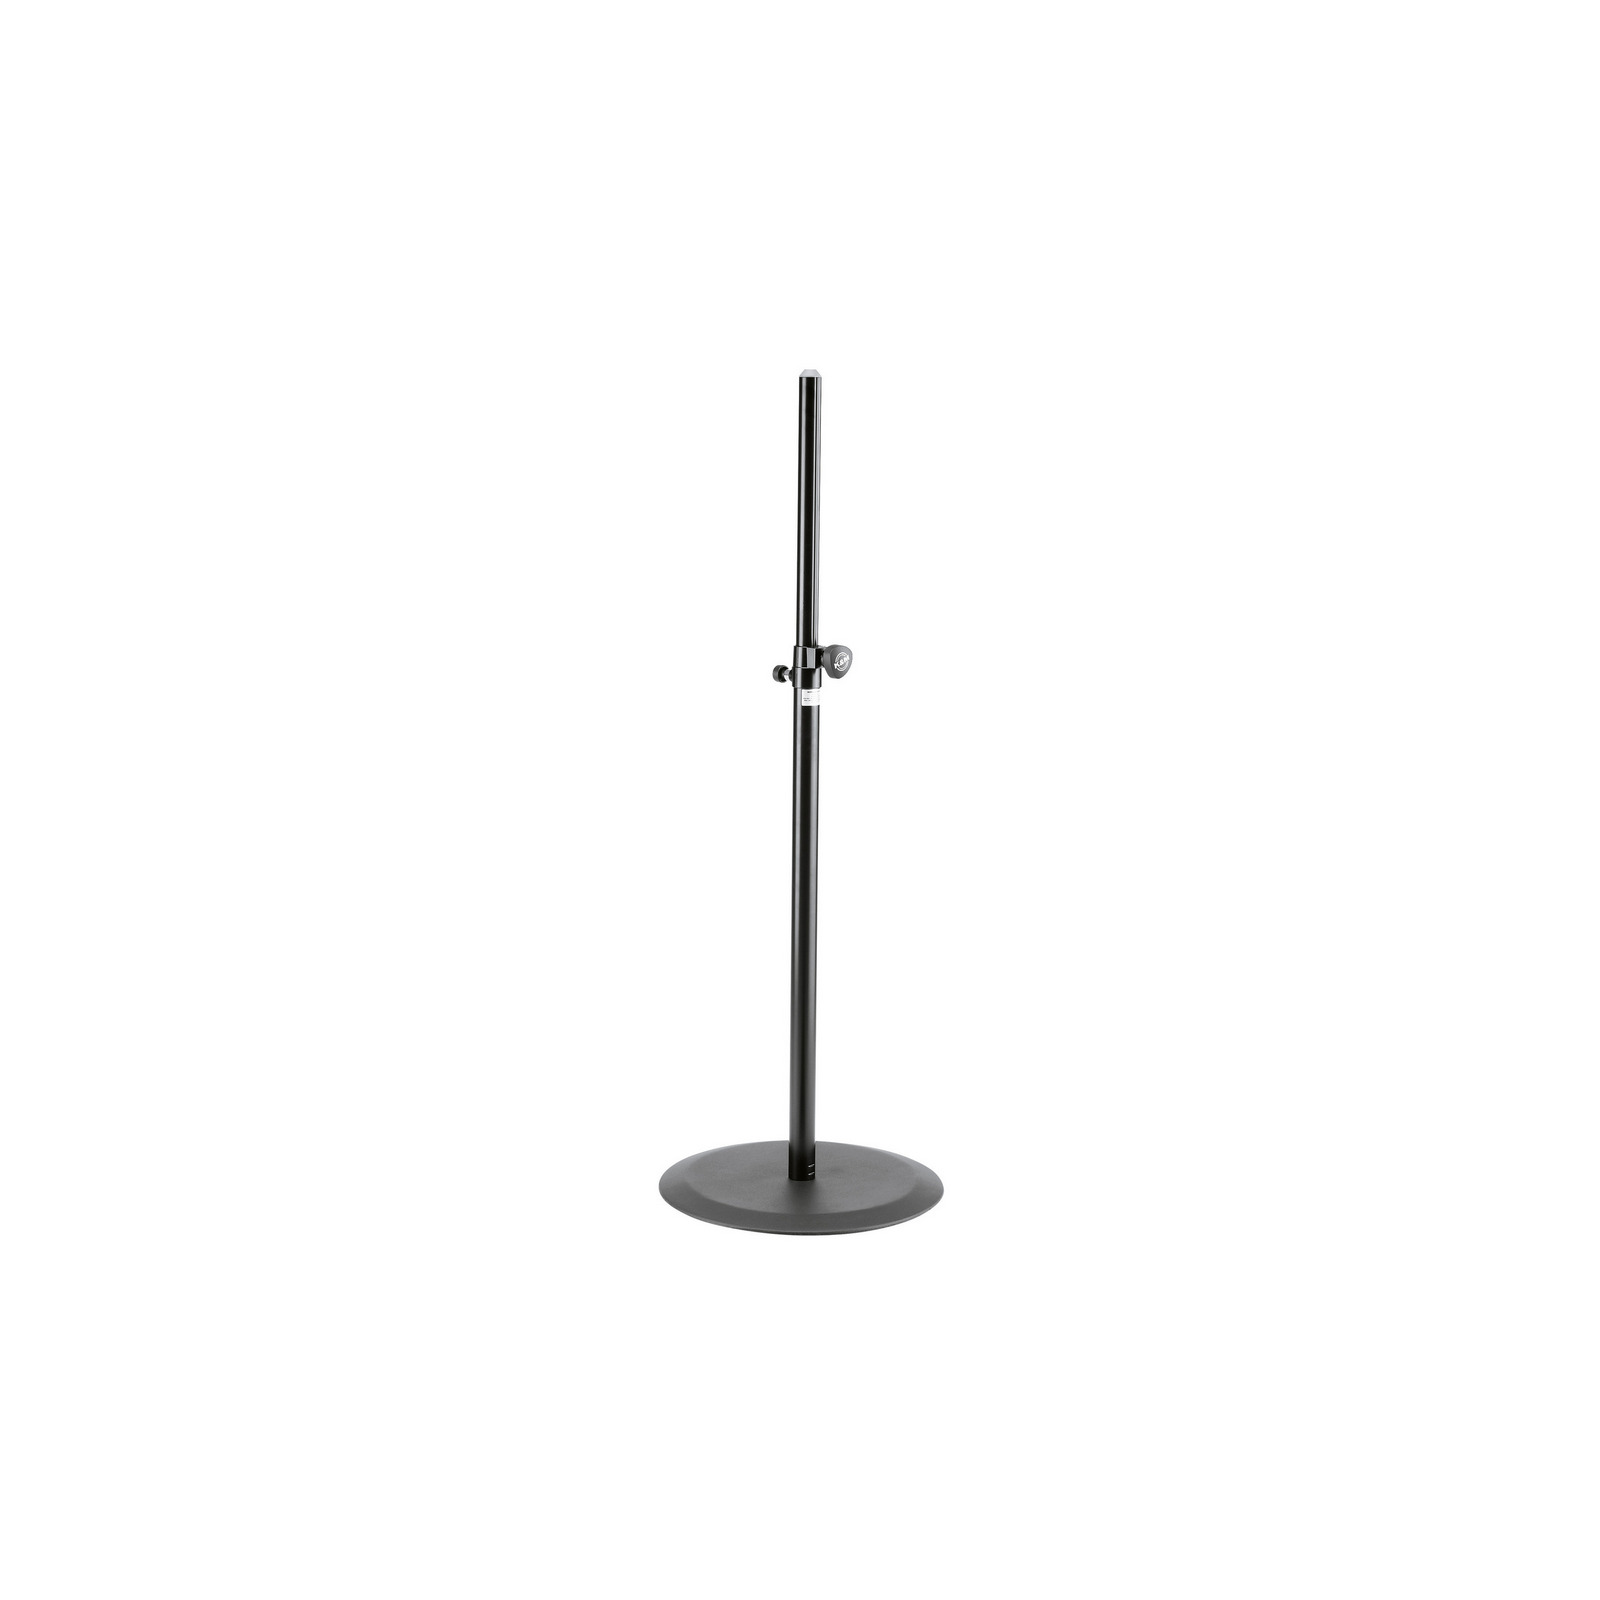 K&M 26735 | Two Piece Foldable Adjustable Speaker Stand Black by